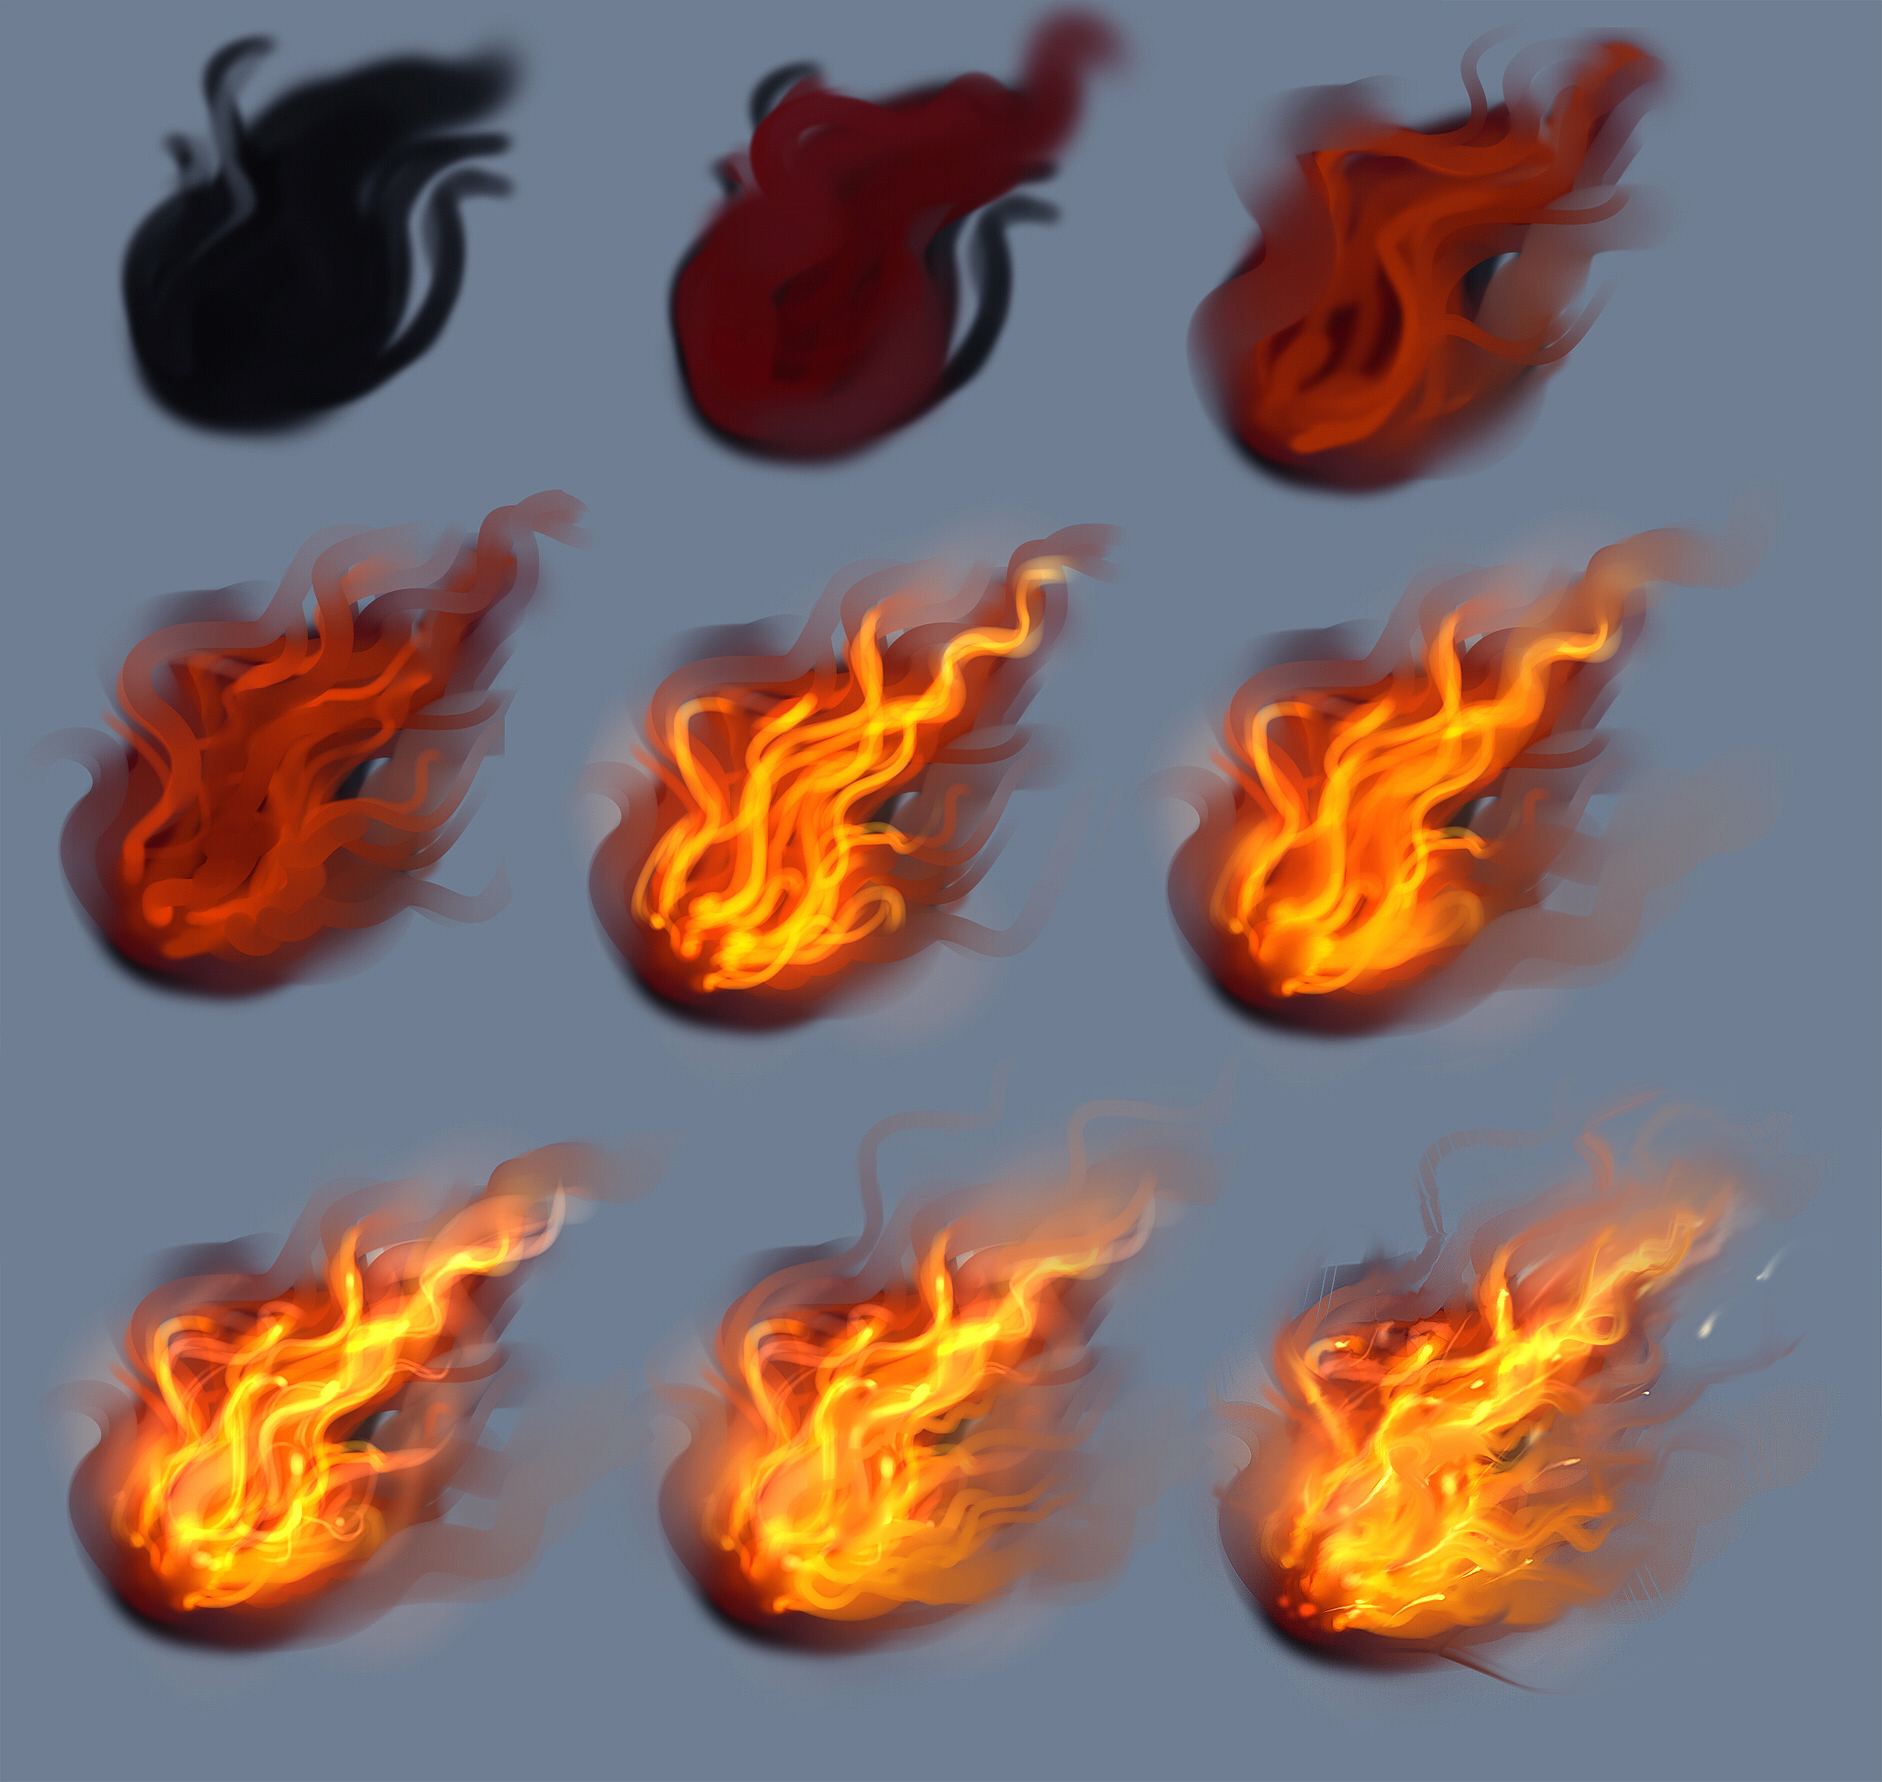 fire drawings design - photo #15